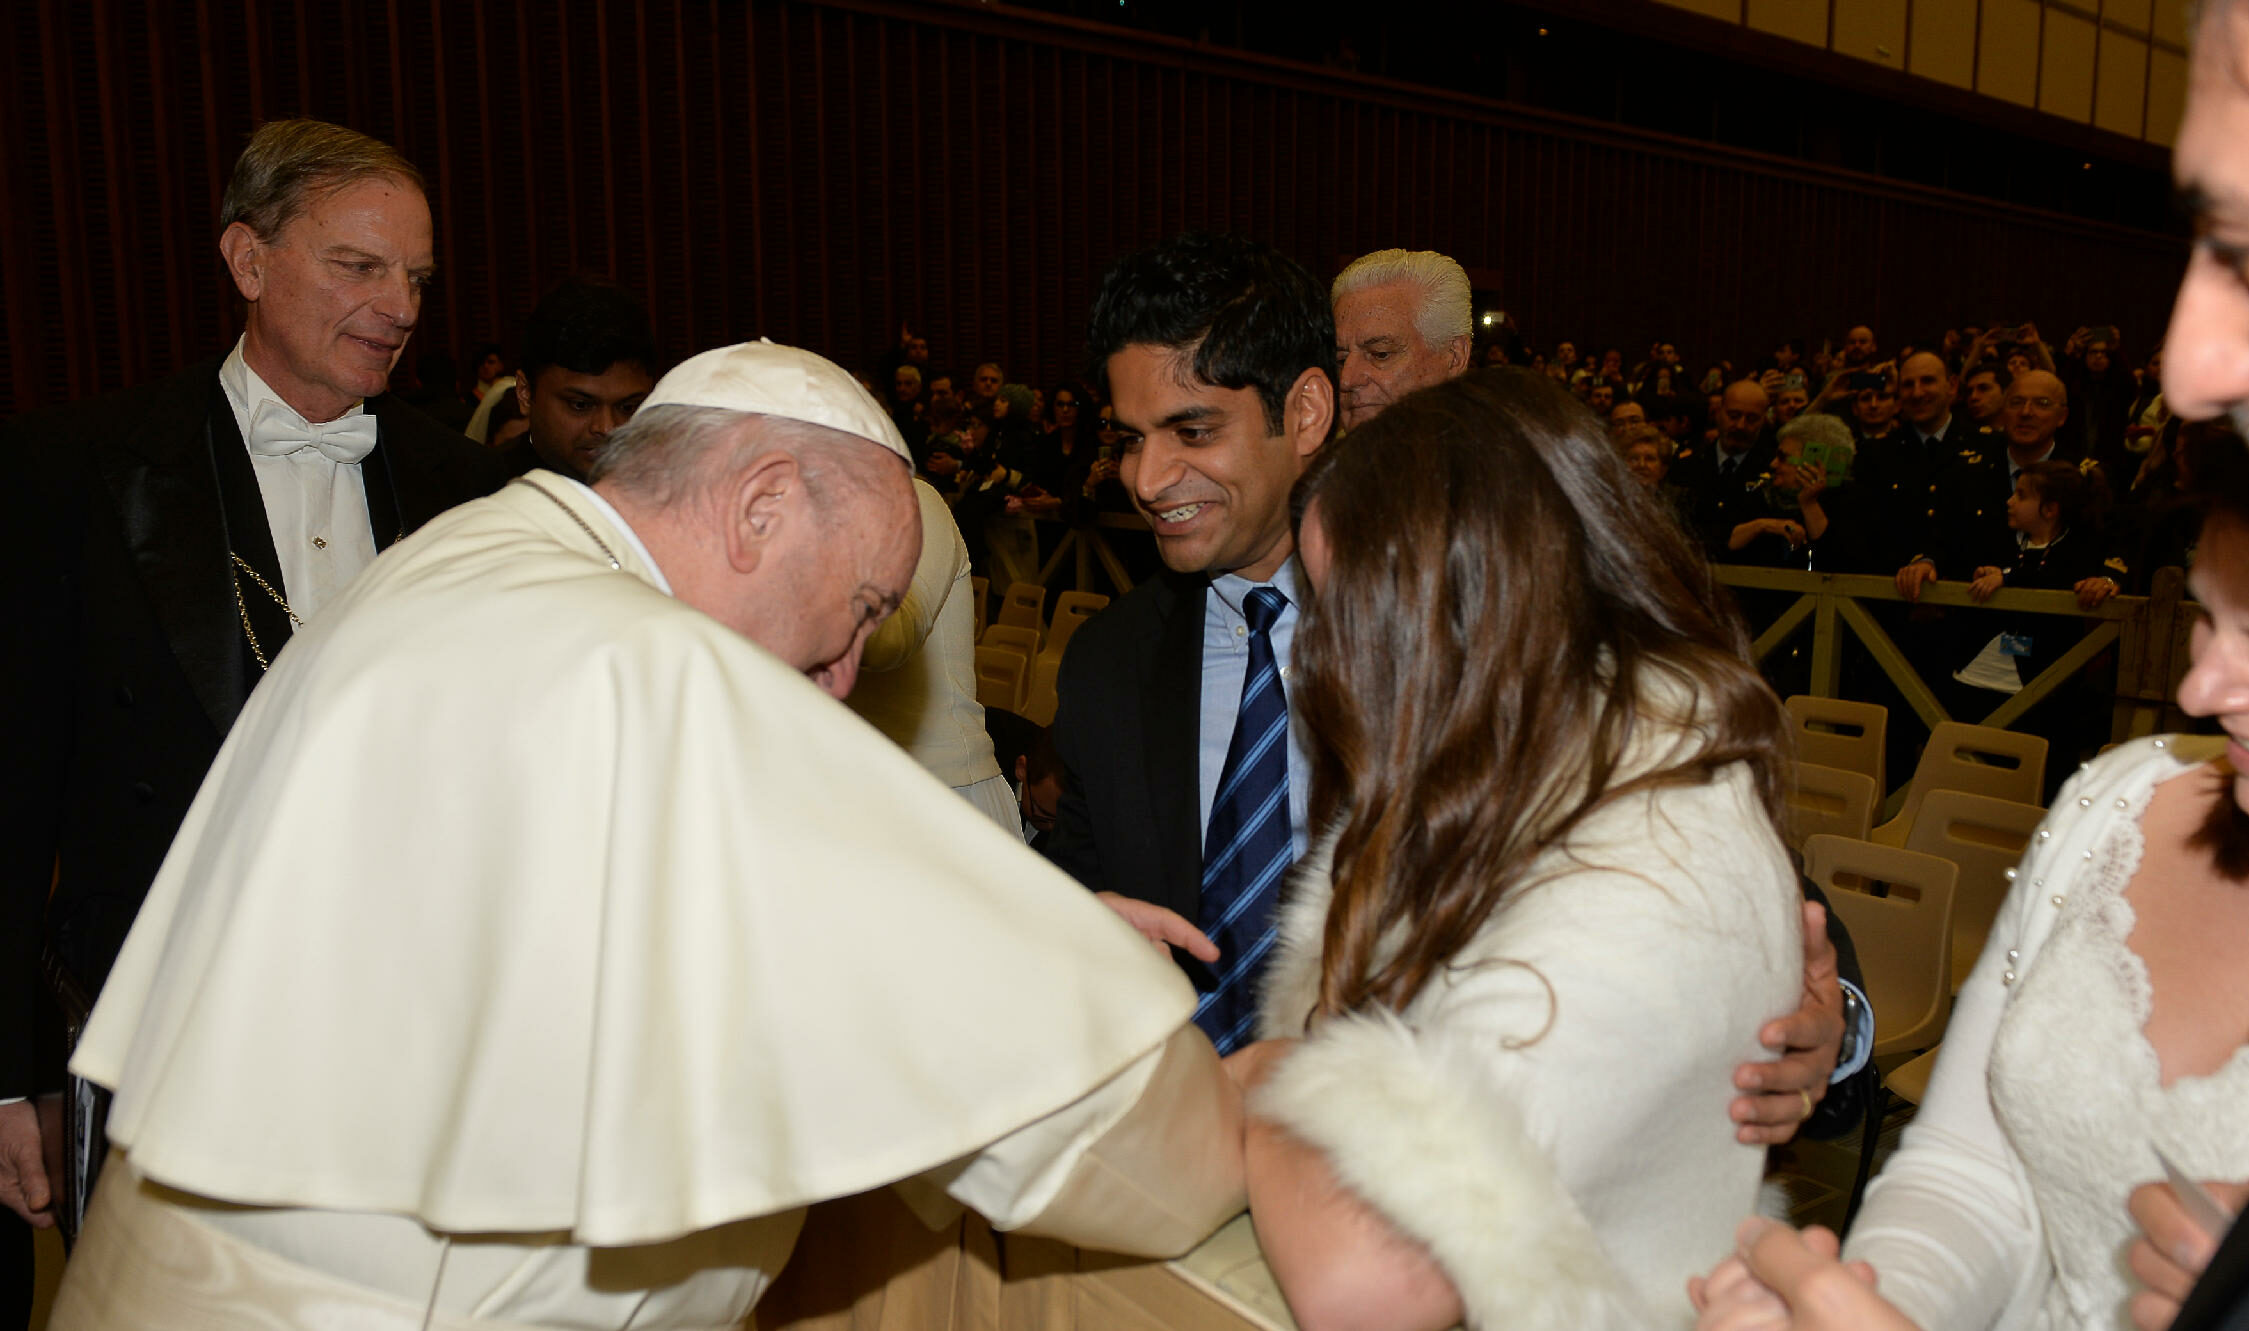 Meeting Pope Francis: Memories of an Encounter